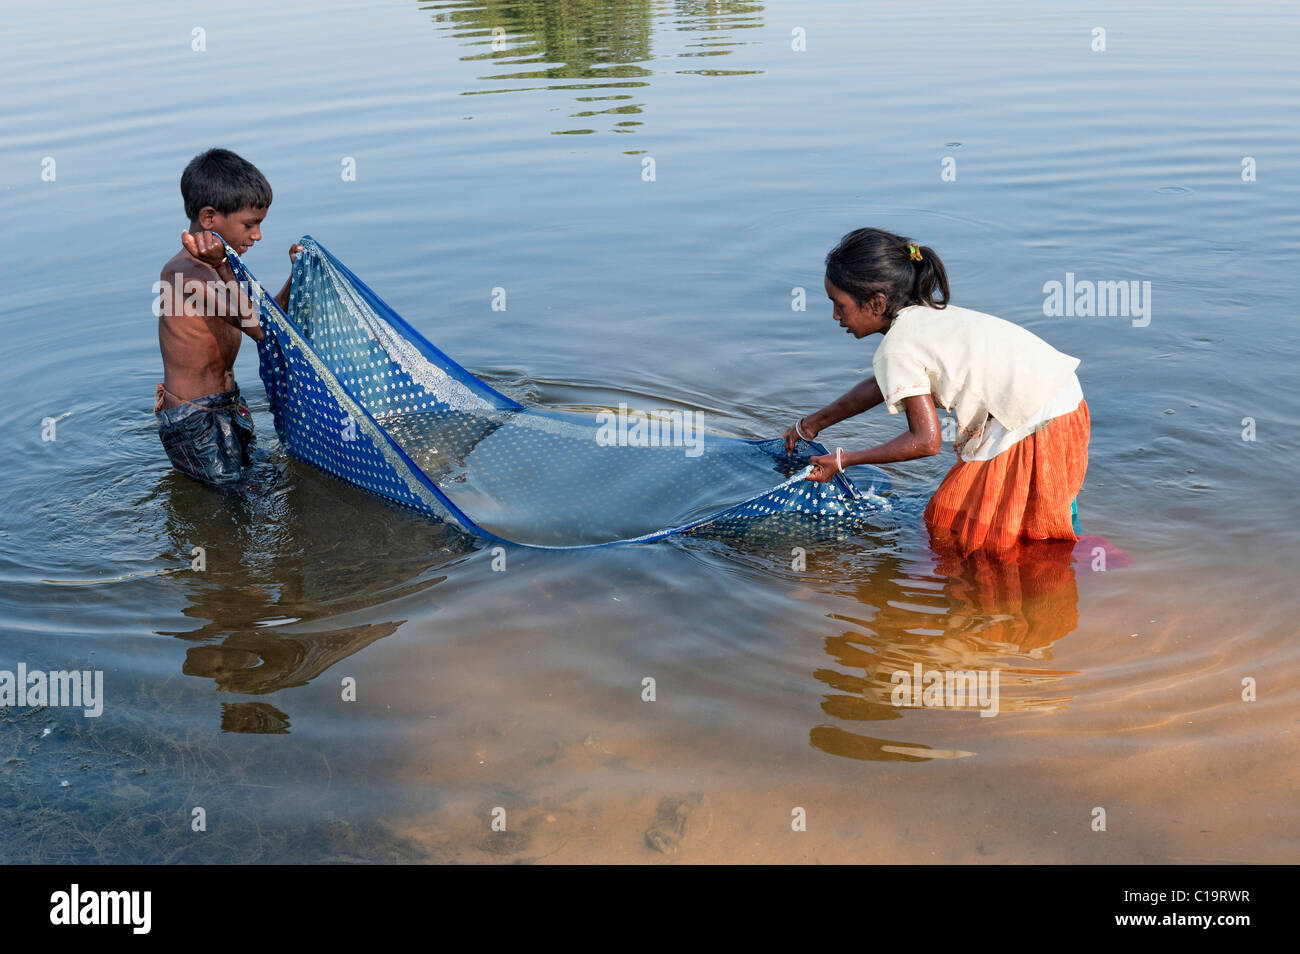 Poor Indian Lower Caste Children Catching Fish With A Sari In The